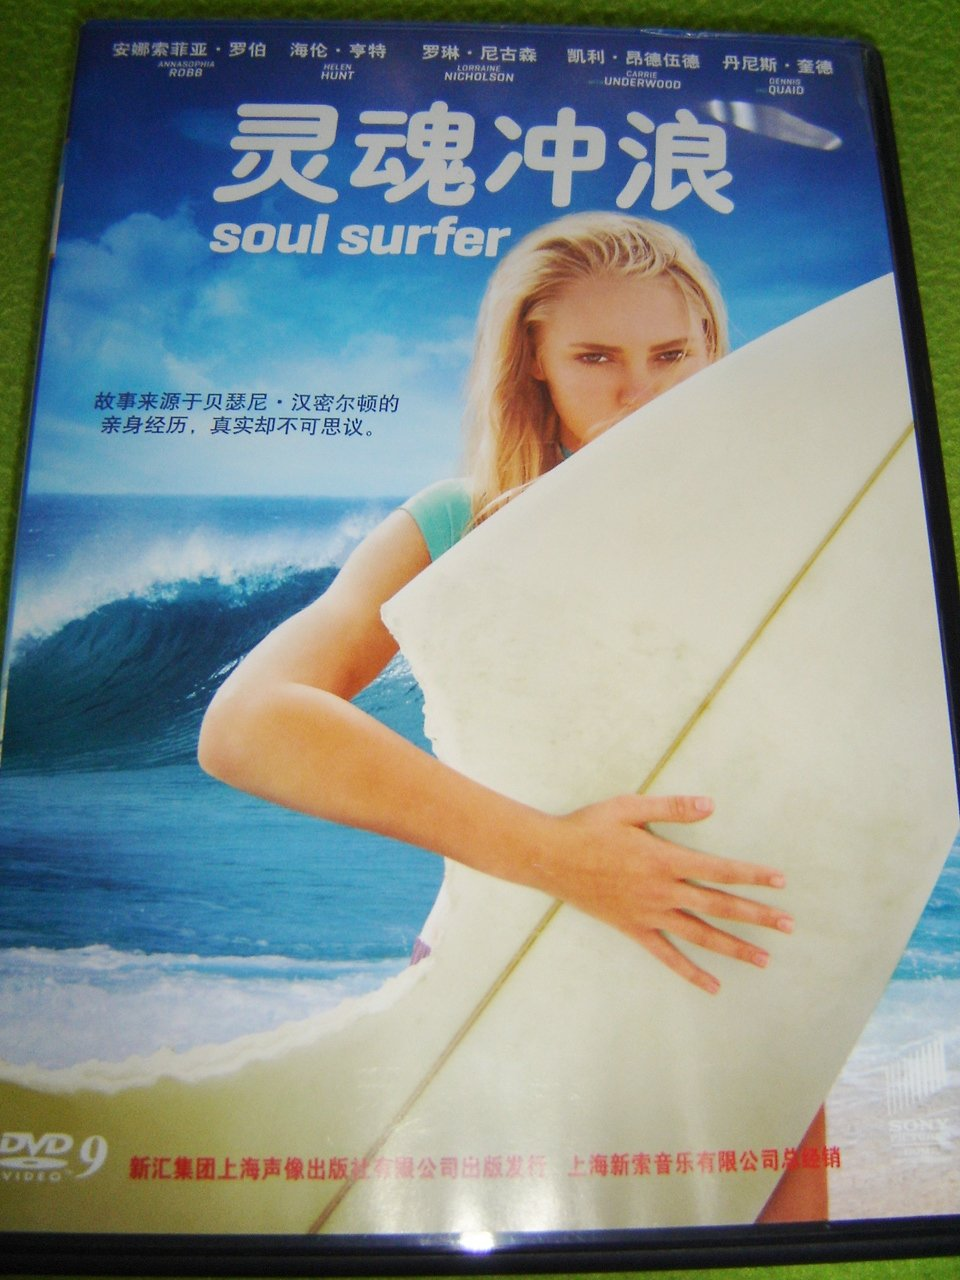 Amazon.com: Soul Surfer (2011): AnnaSophia Robb, Dennis Quaid, Sean  McNamara: Movies & TV